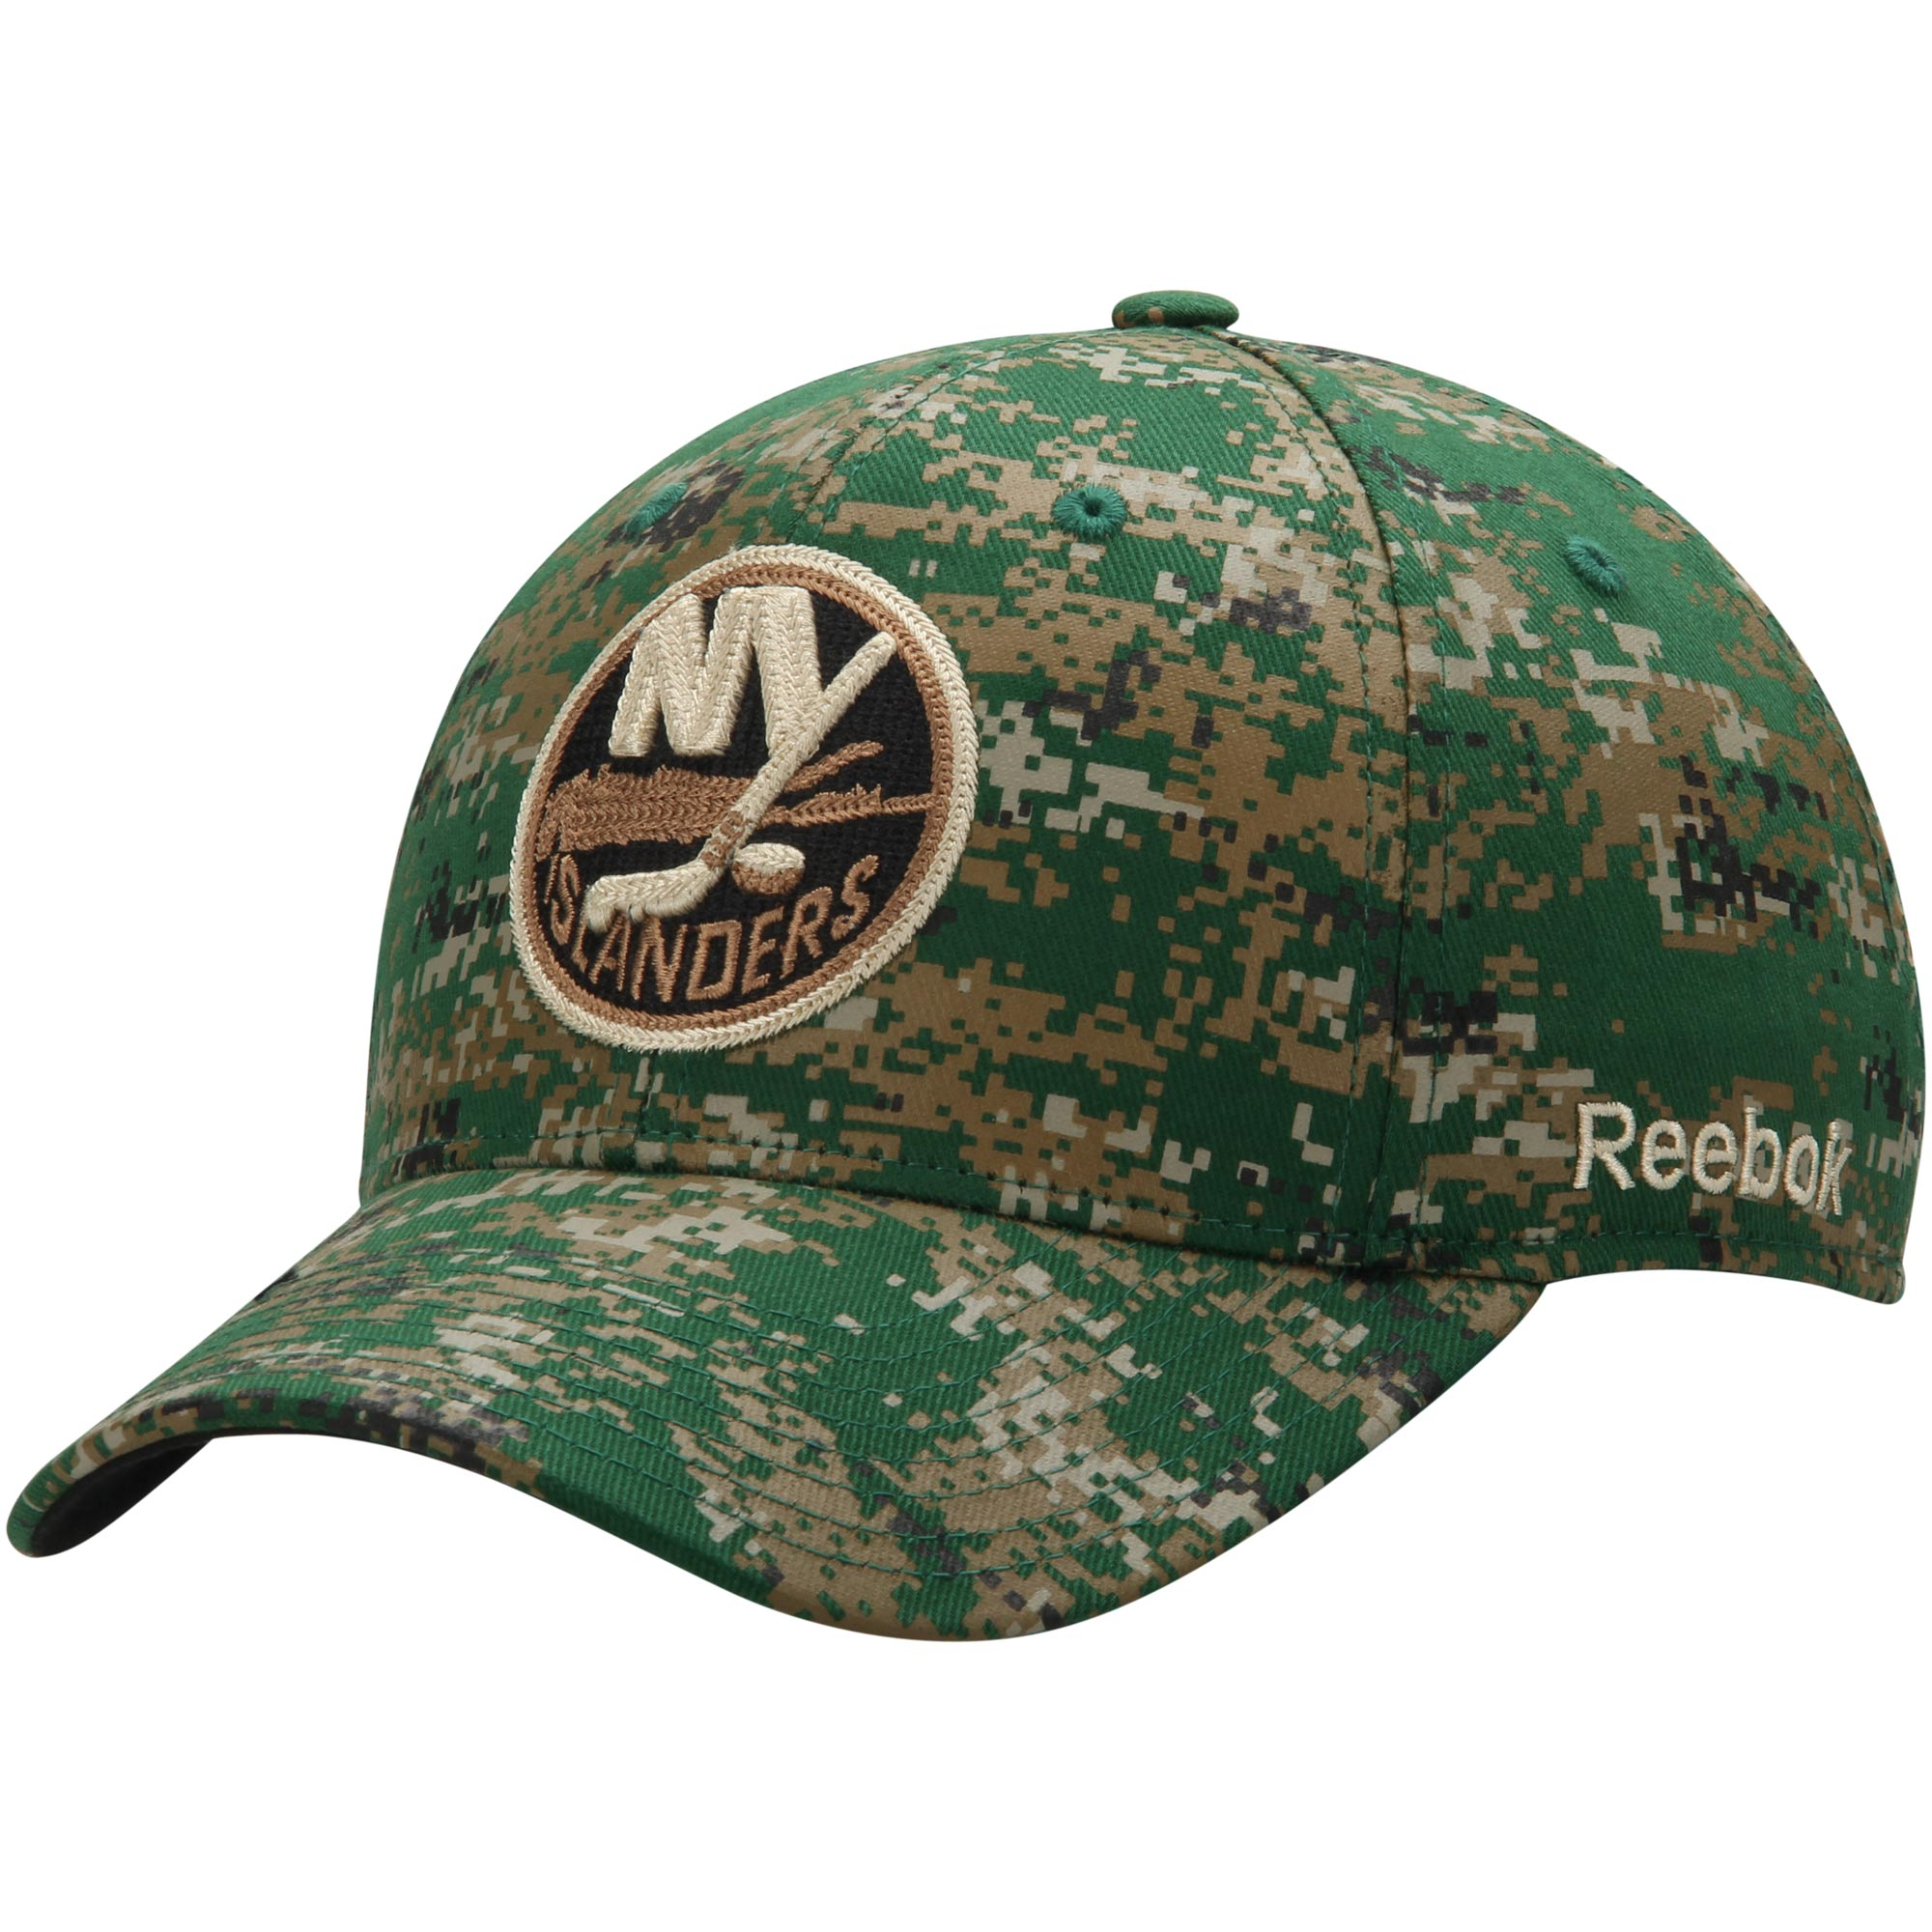 New York Islanders Reebok Structured Flex Hat - Digital Camo